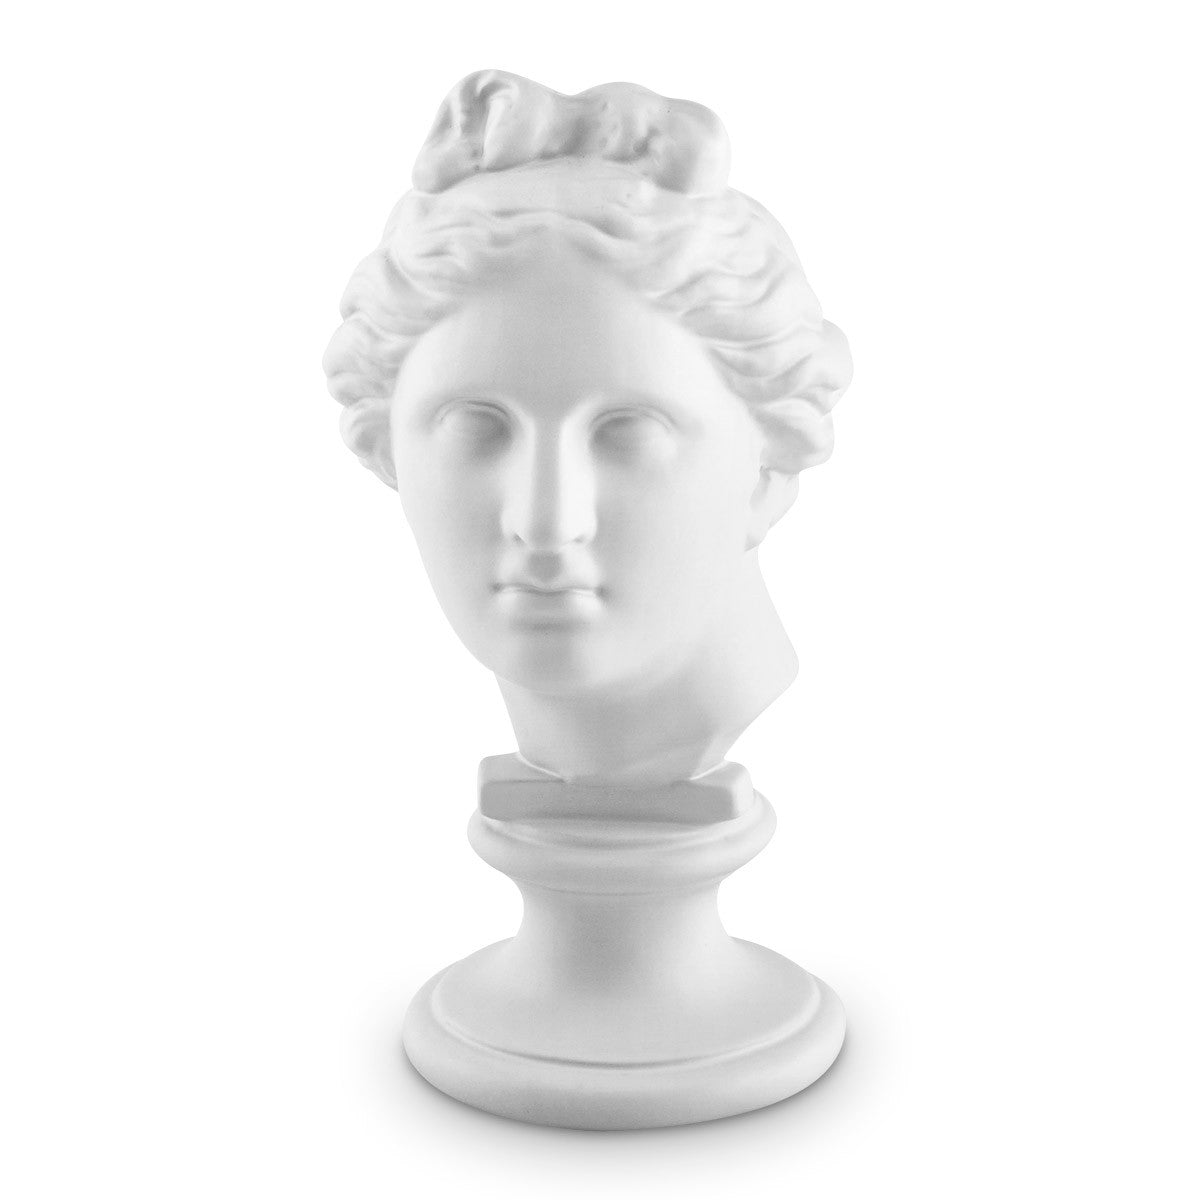 Ceramic greek bust statue white